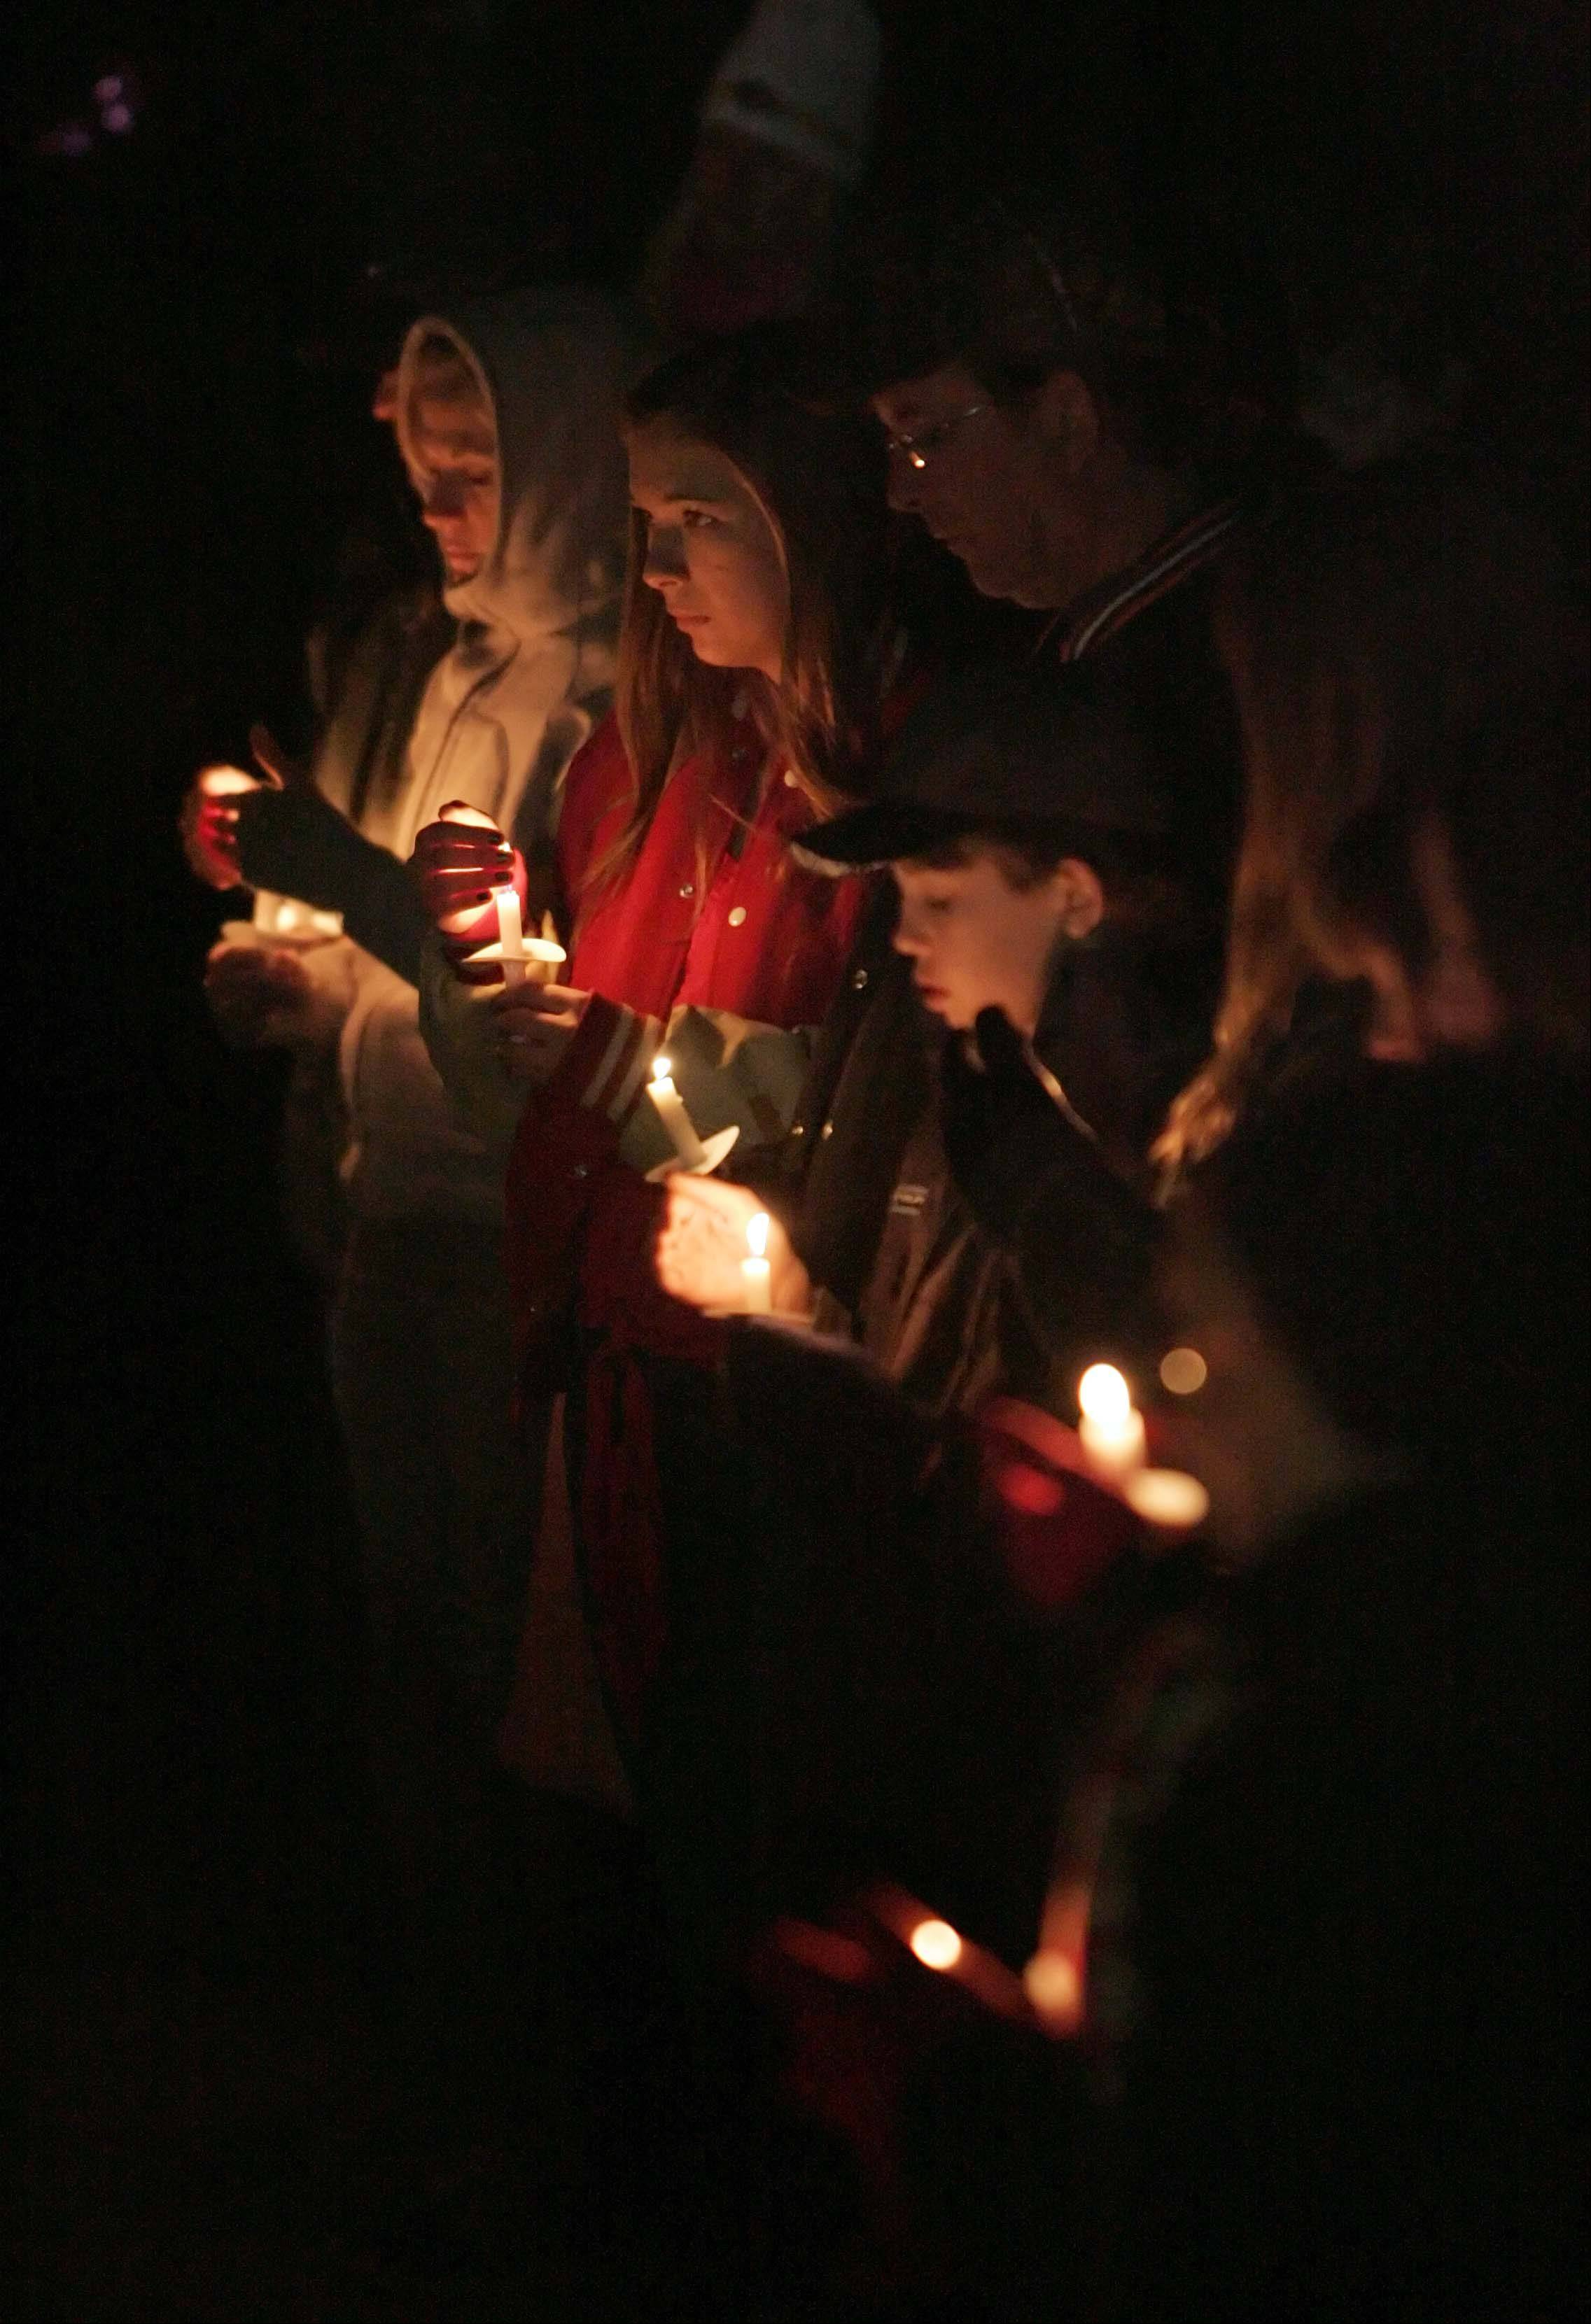 People gather during a vigil for 5-year-old Olivia Dworakowski at St. Thomas the Apostle Catholic Church in Naperville Friday. Police say Elzbieta Plackowska stabbed Olivia to death, along with Plackowska's 7-year-old son Justin.